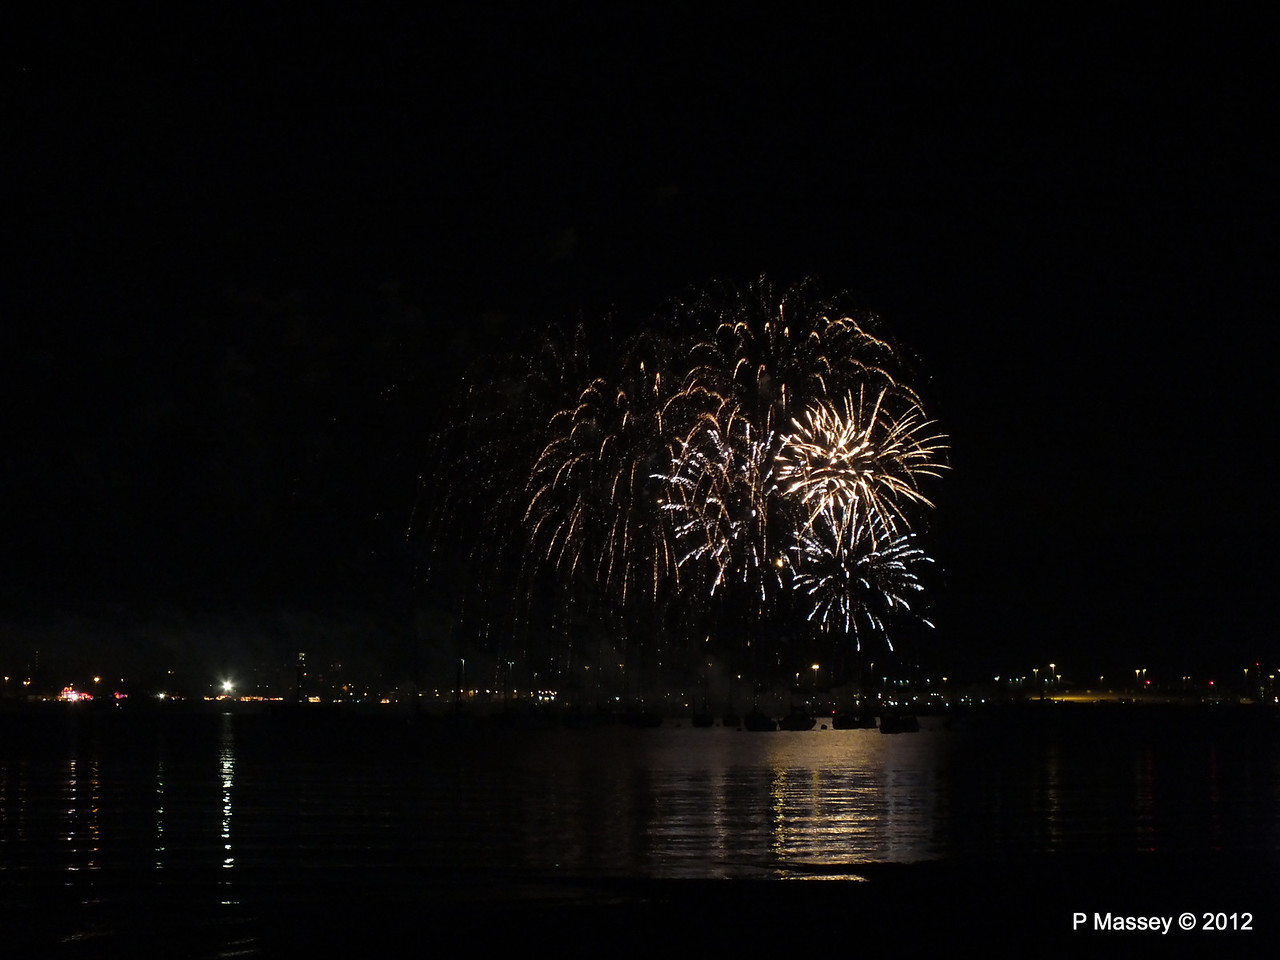 Fireworks off Mayflower Park PDM 03-11-2012 20-55-37